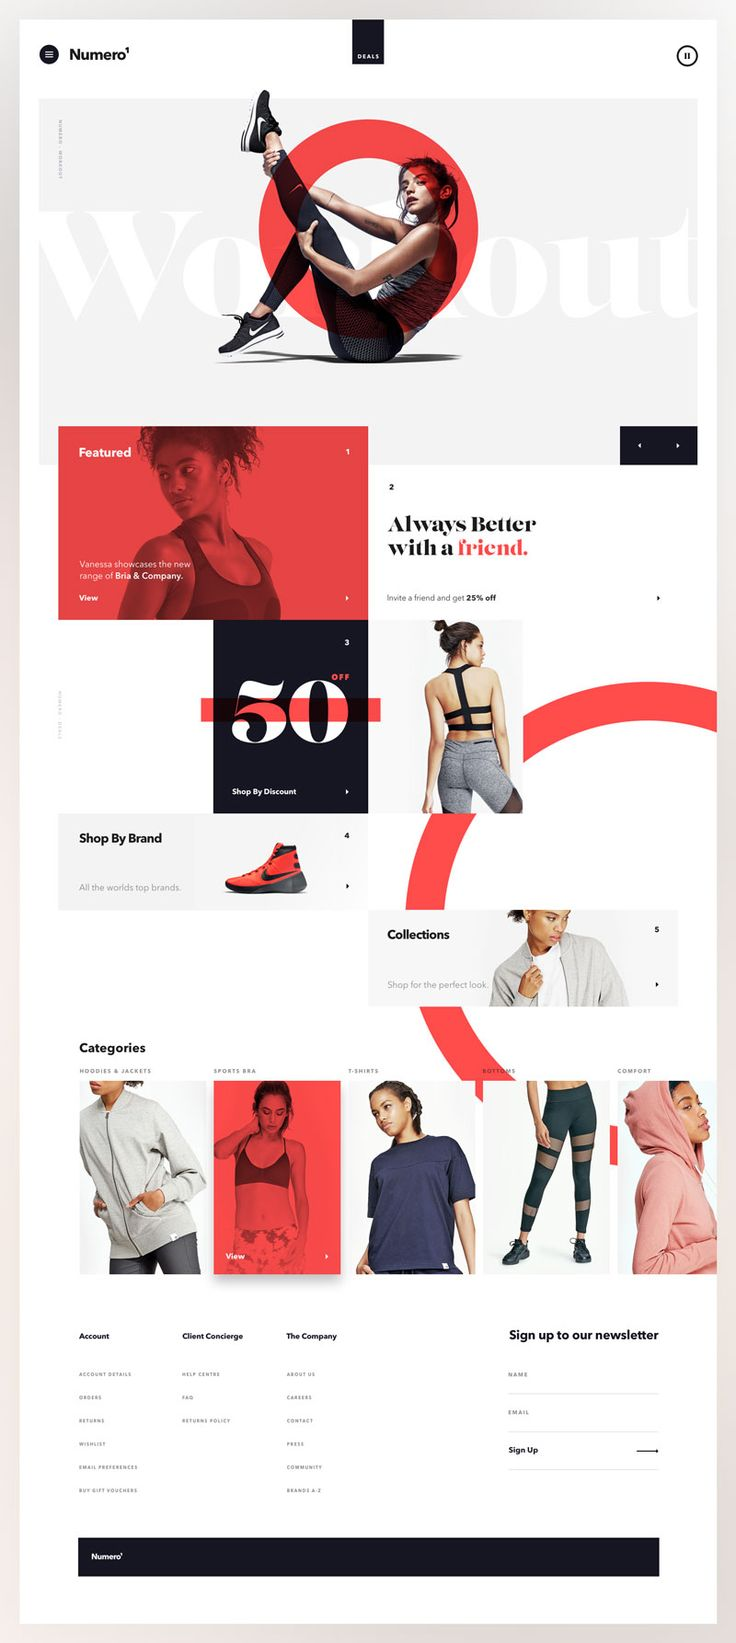 Best Product Website Design Inspiration